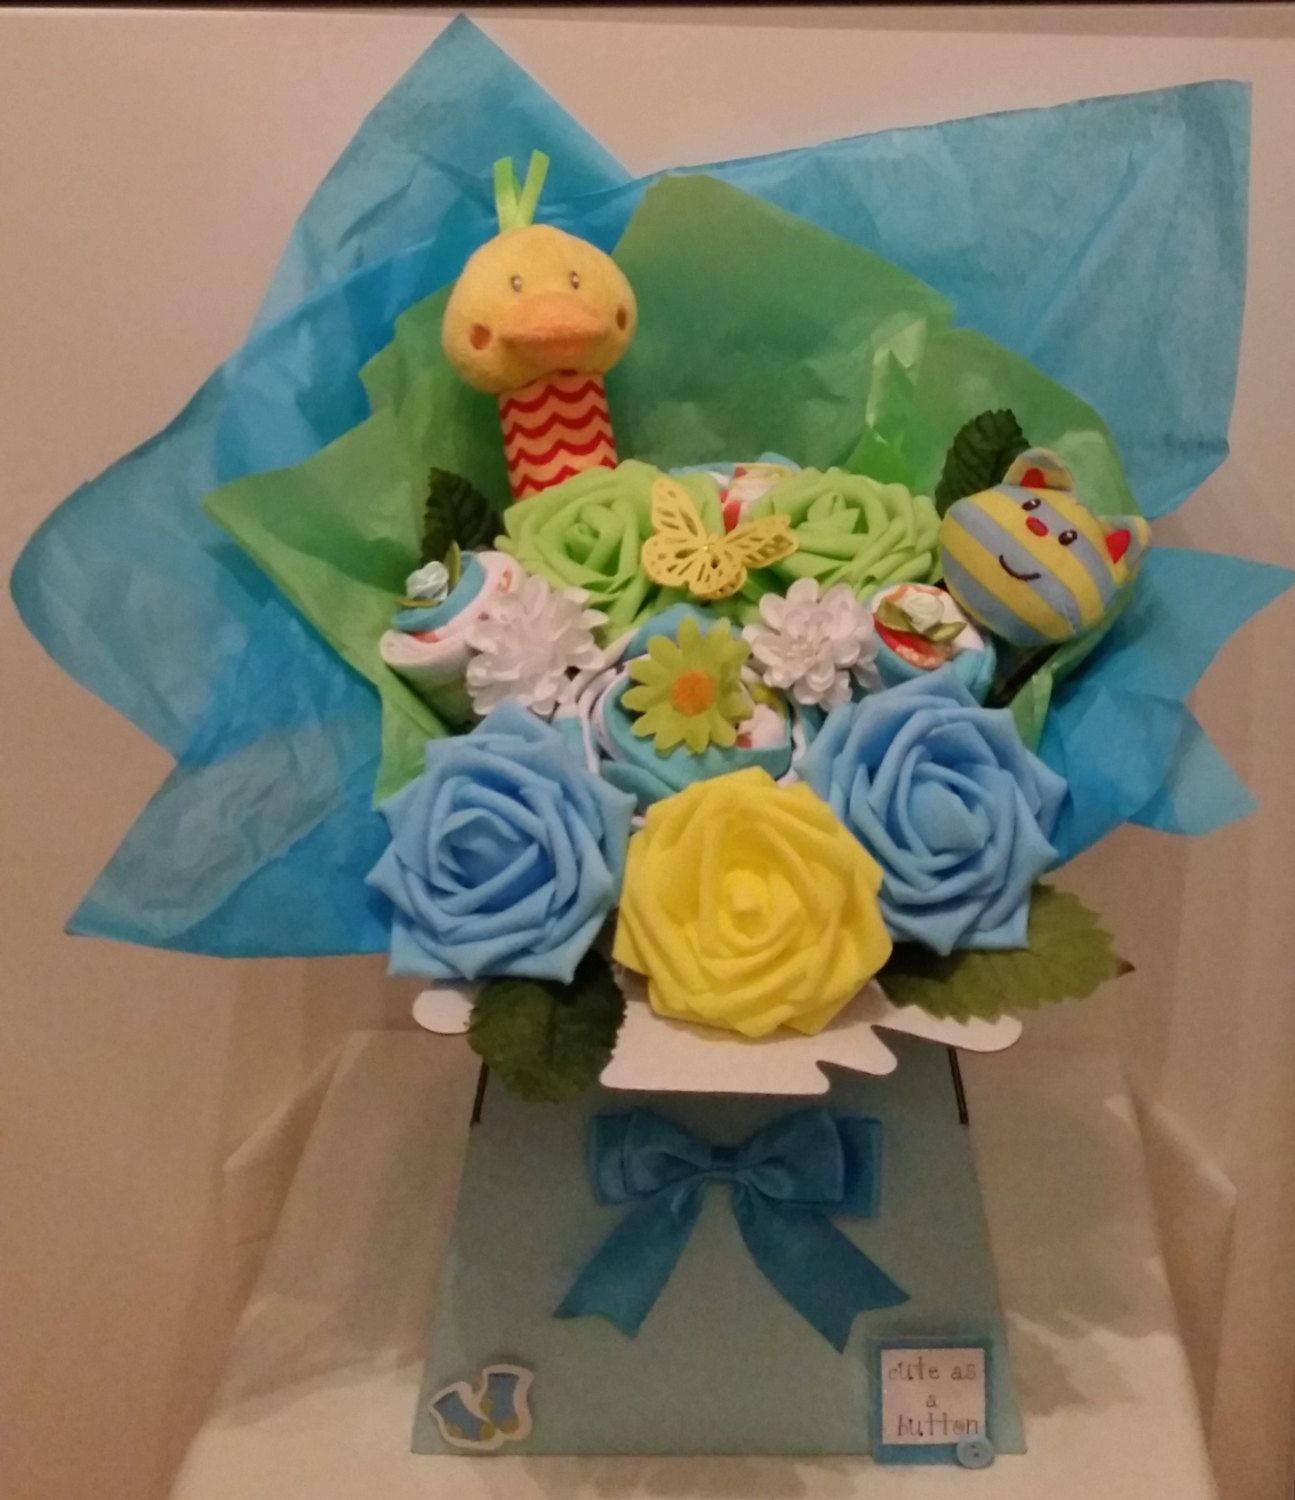 Bright baby boys clothessock bouquet baby shower new baby gift bright baby boys clothessock bouquet baby shower new baby gift maternity negle Images